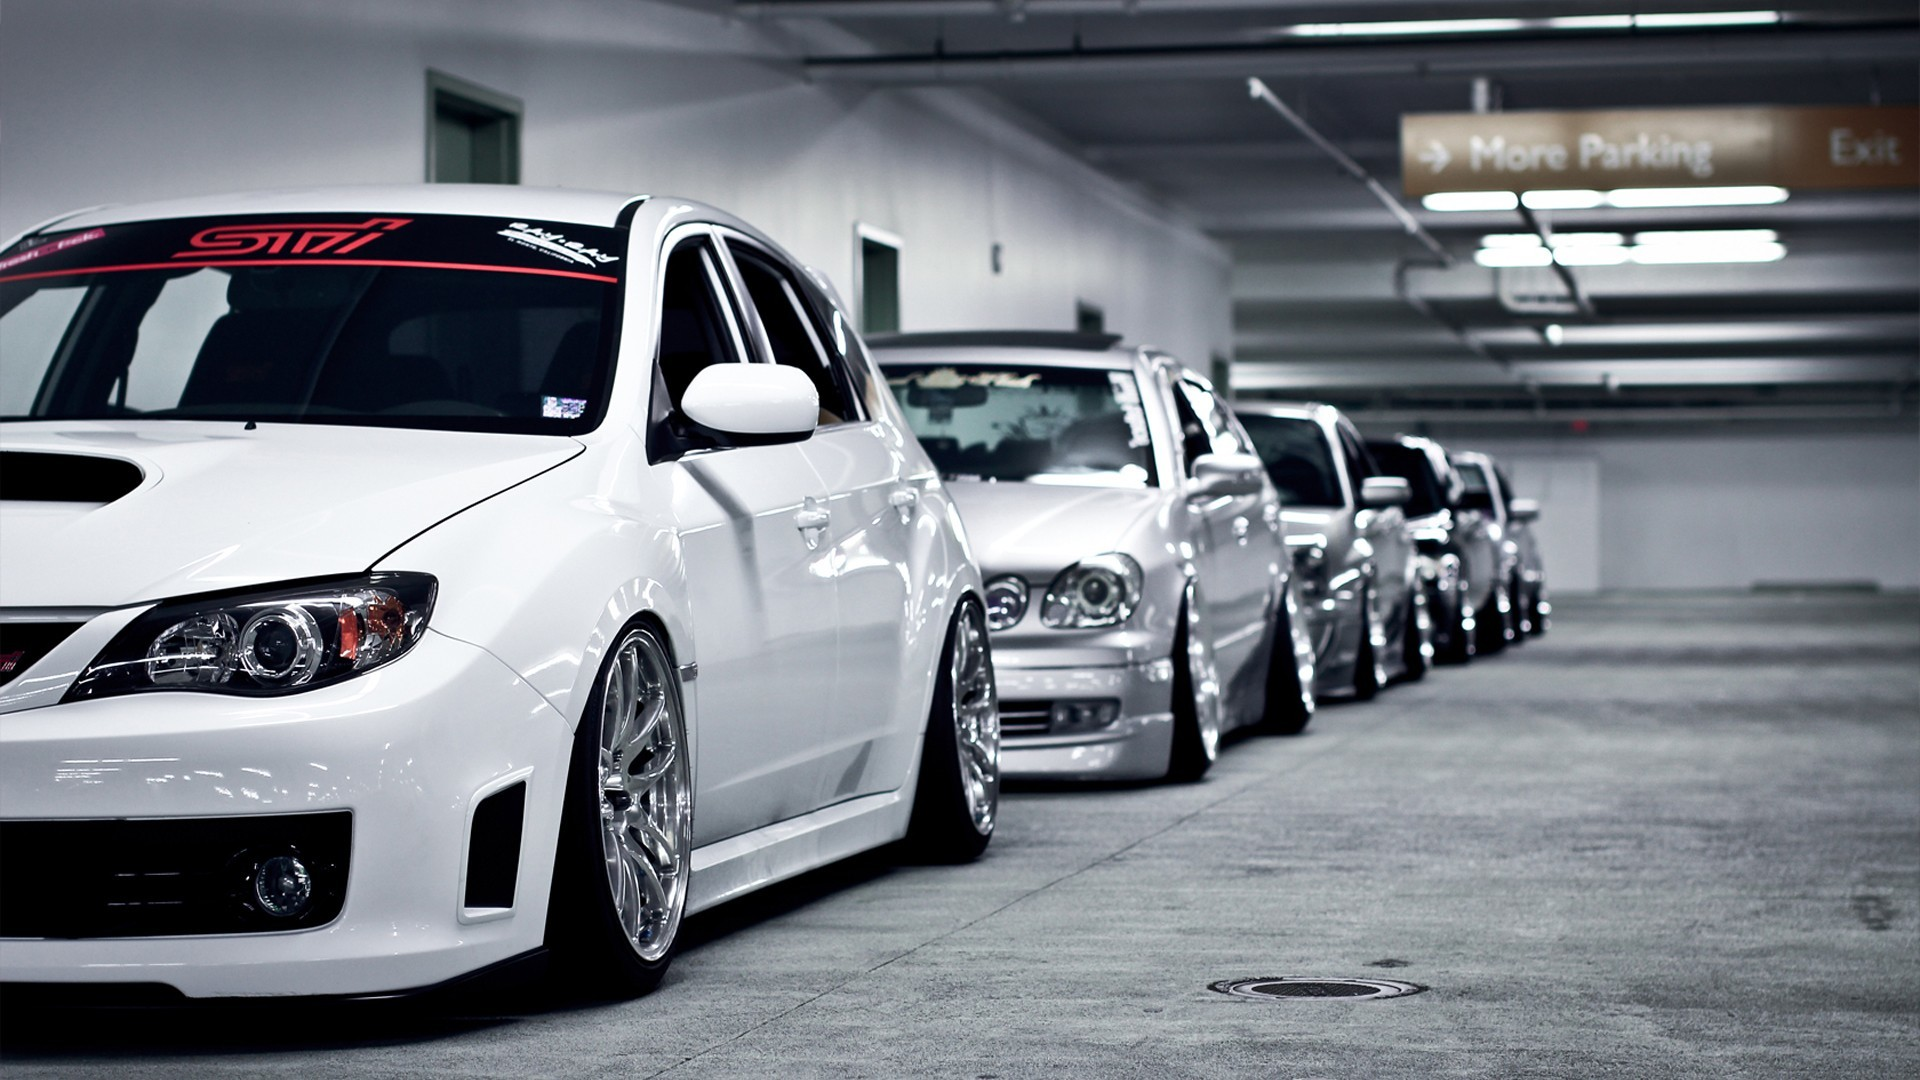 Cars Lexus Parking Lot Stance Subaru Impreza WRX STI Toyota Tuning